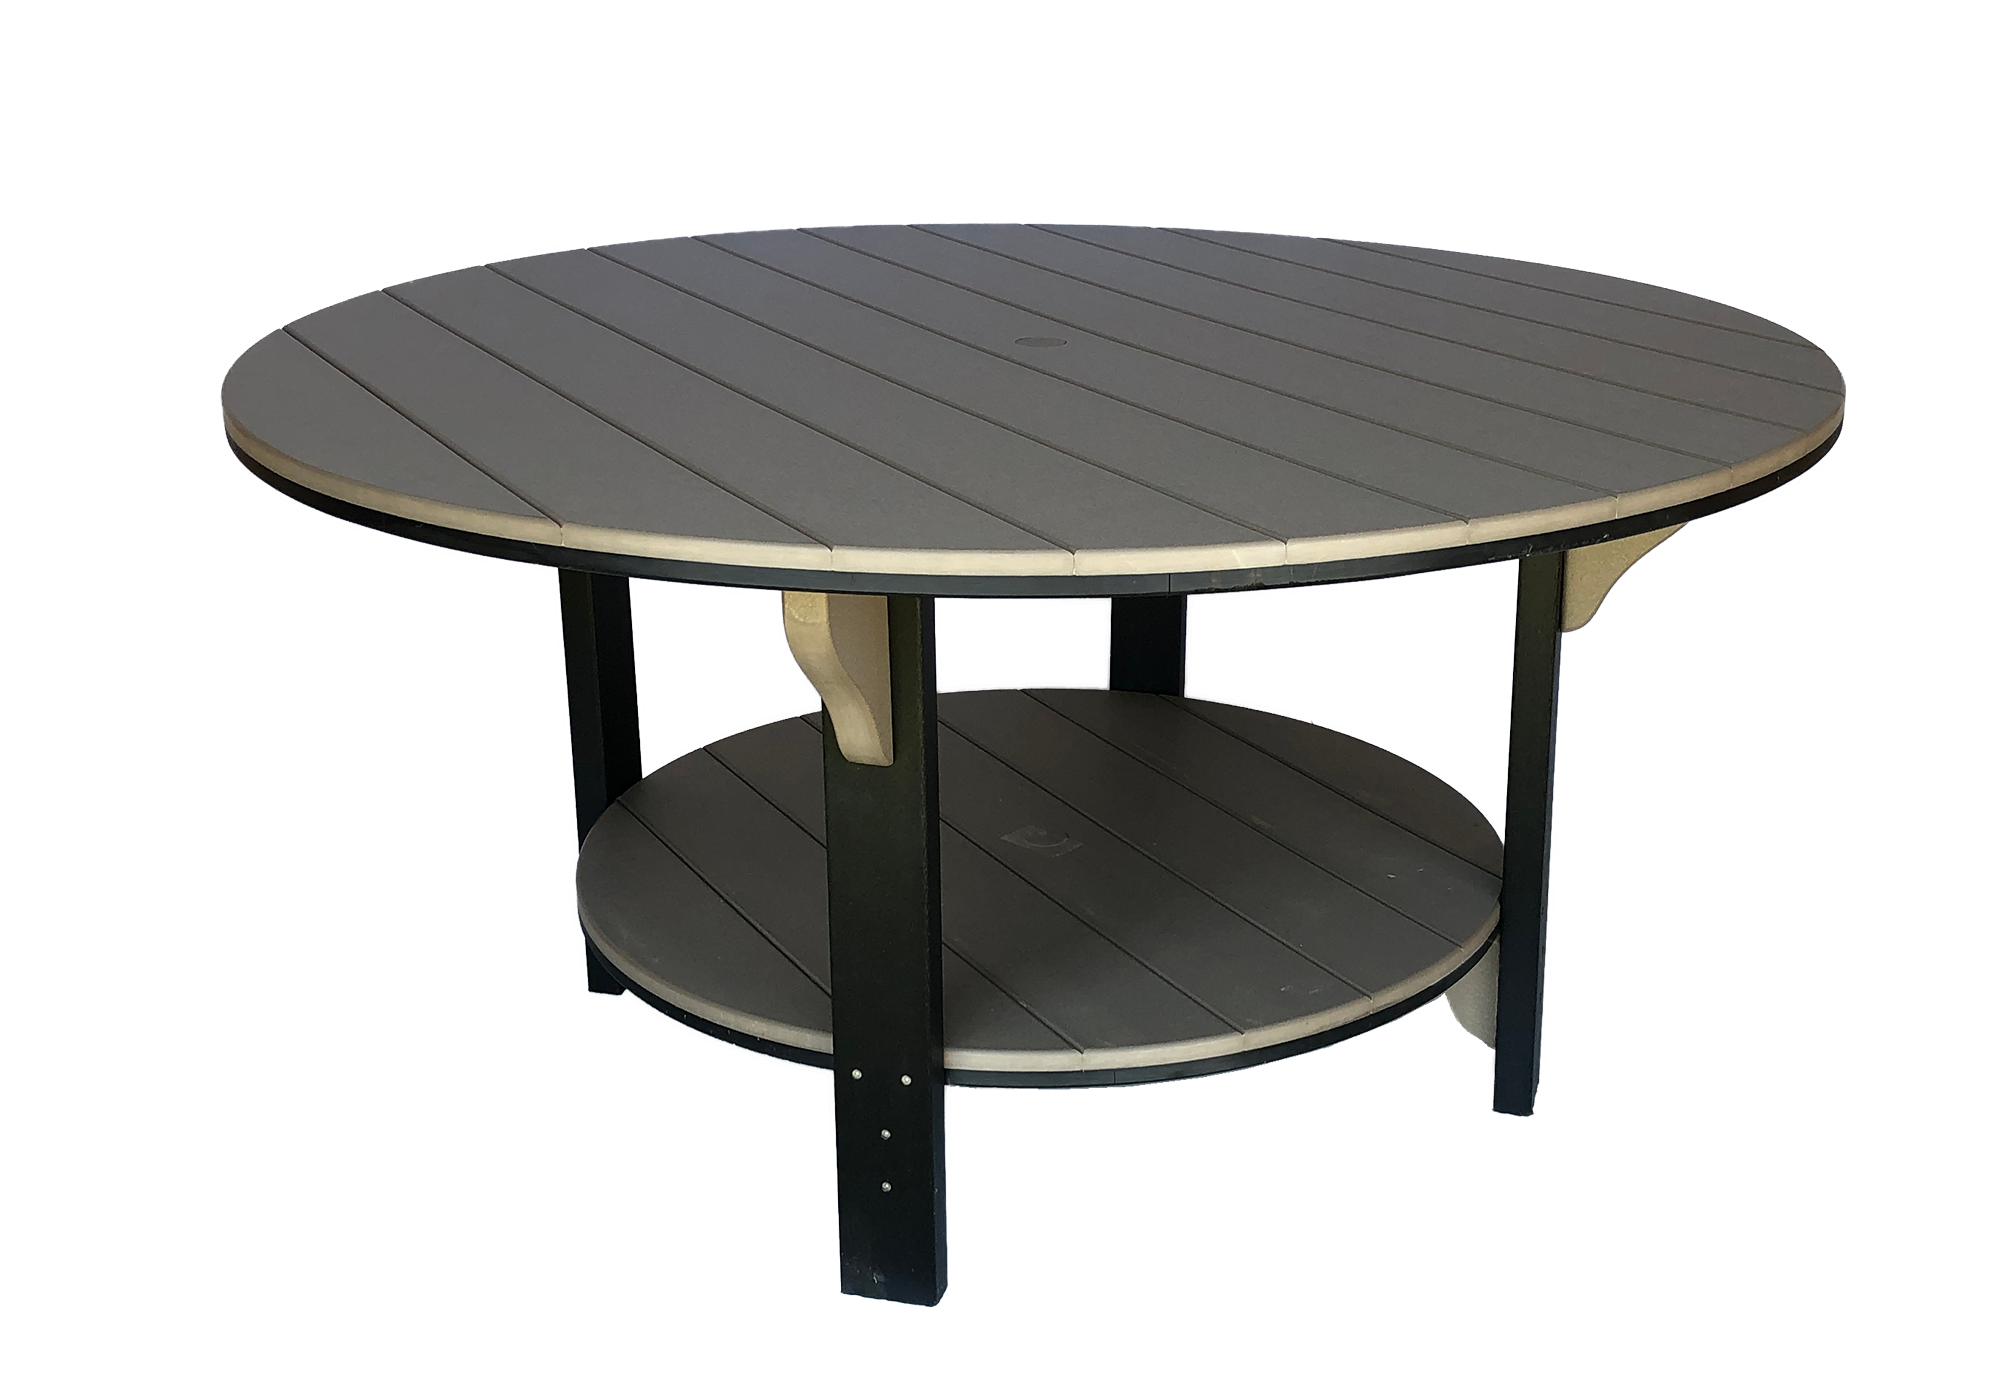 45 outdoor patio tables for sale